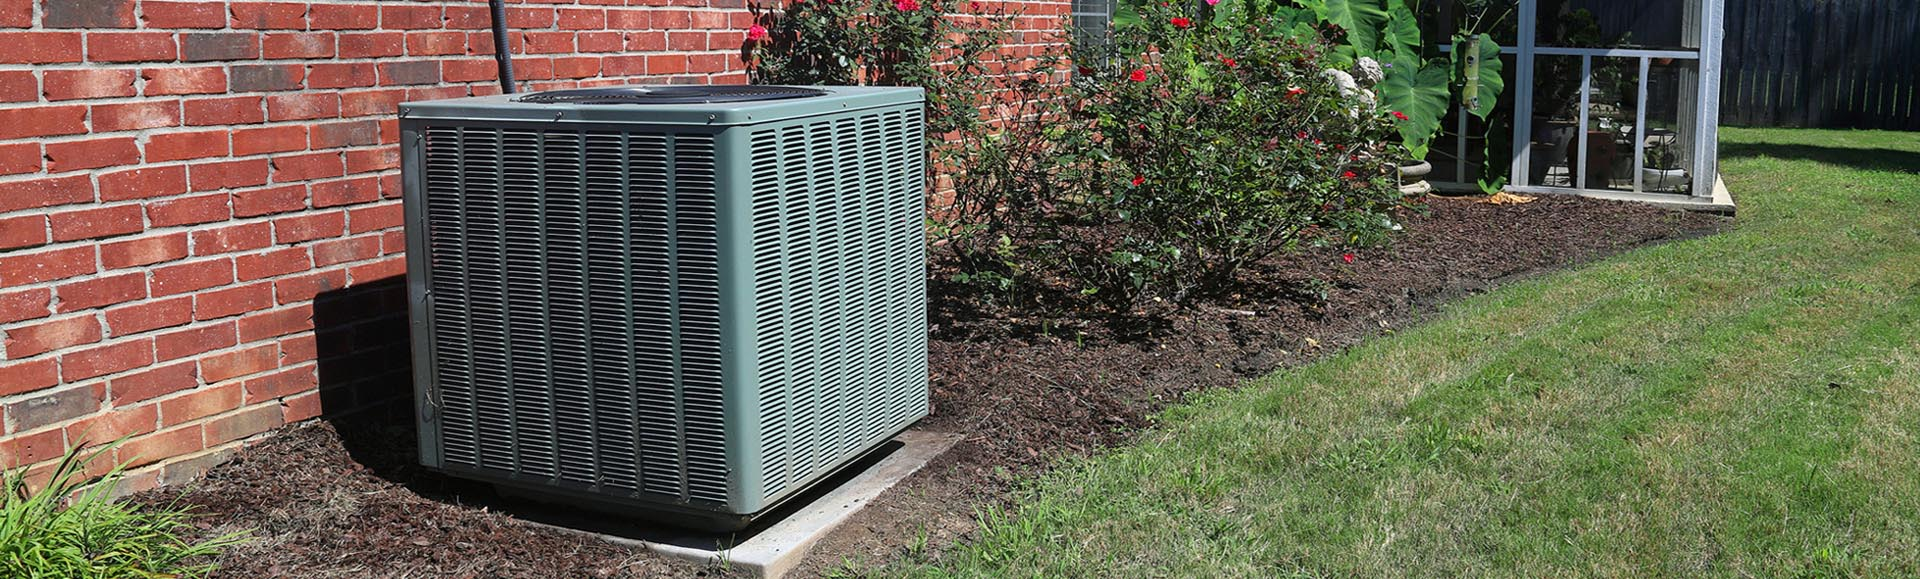 Air Conditioning Repair / Installation - Ductworks Heating and Cooling